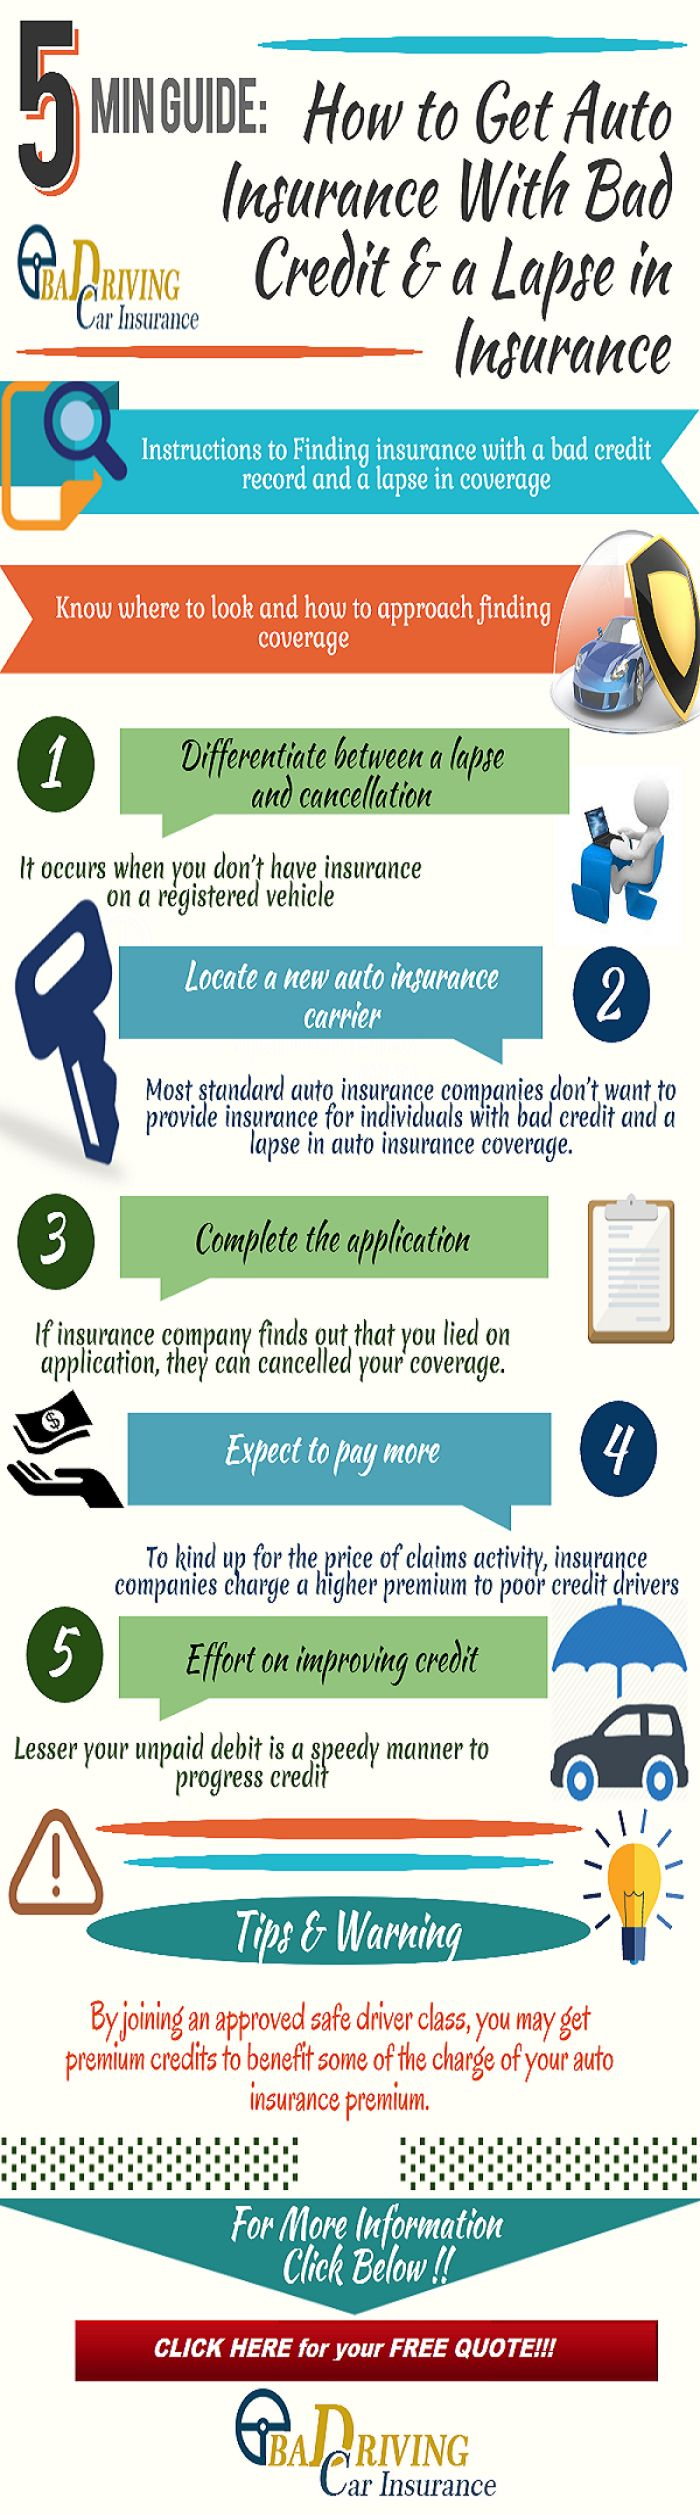 Auto Quote Impressive 9 Best Carauto Insurance Infographic Images On Pinterest